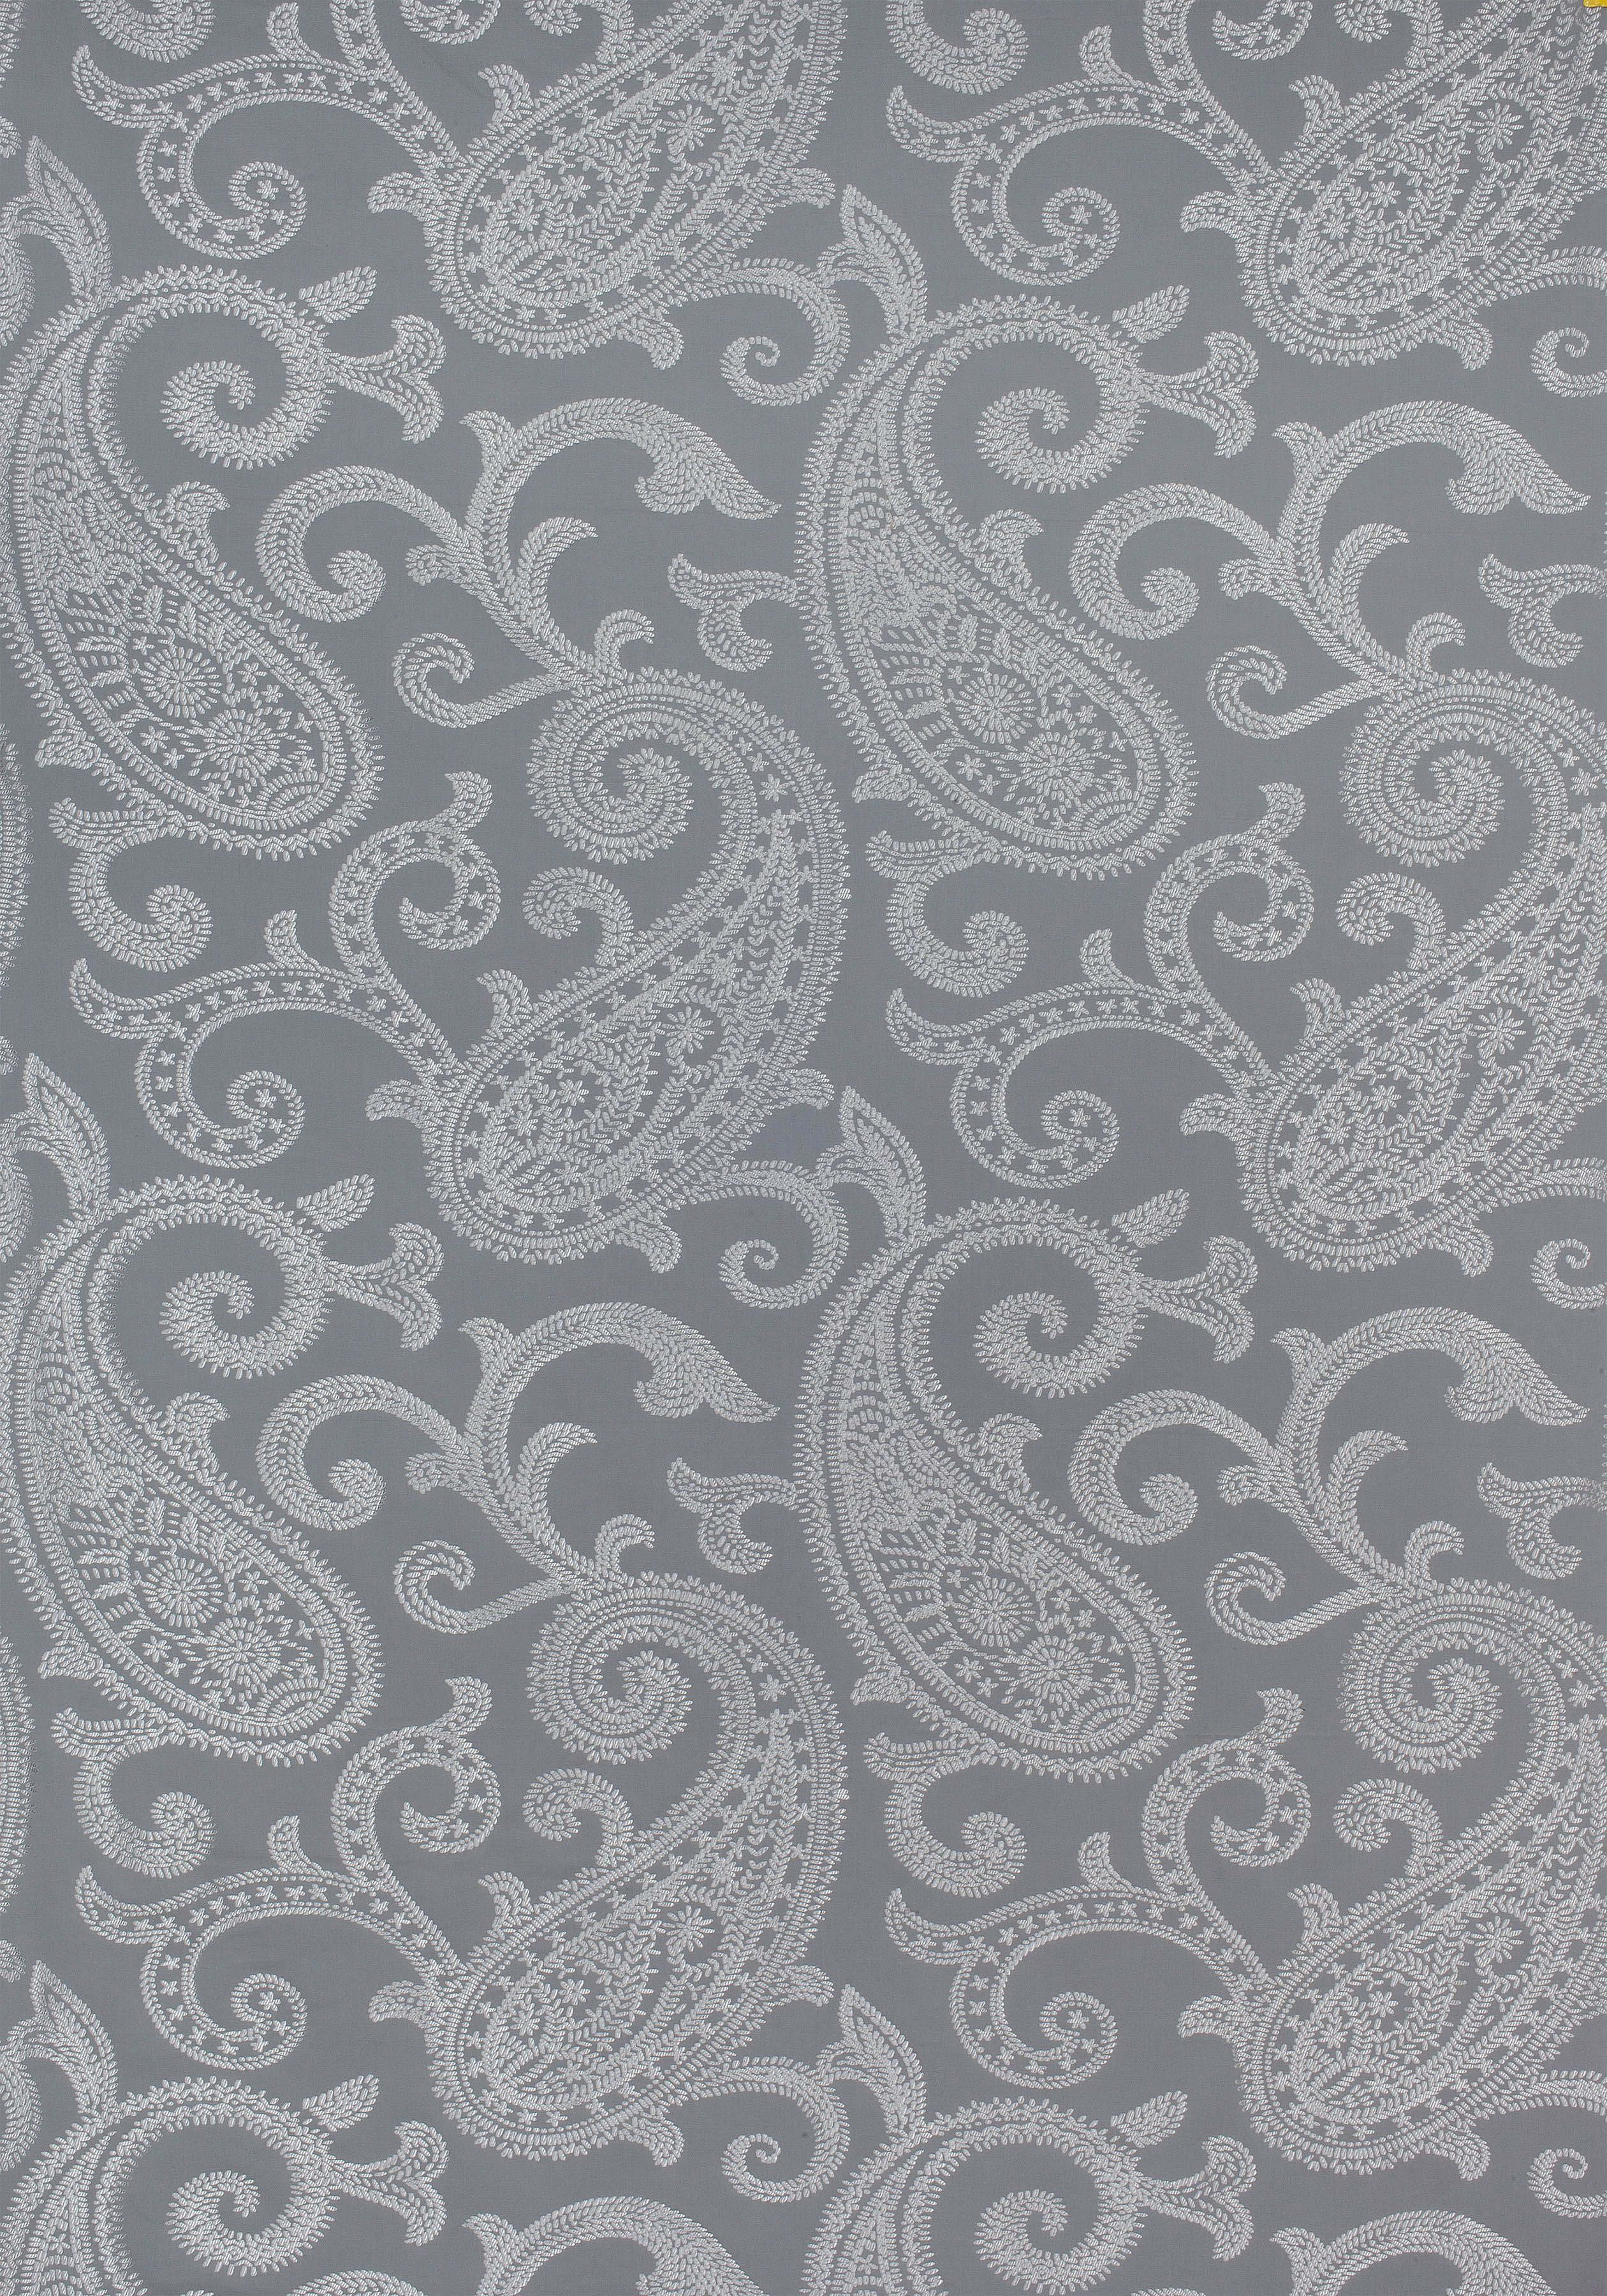 Bradford Paisley Grey Aw9130 Collection Natural Glimmer From